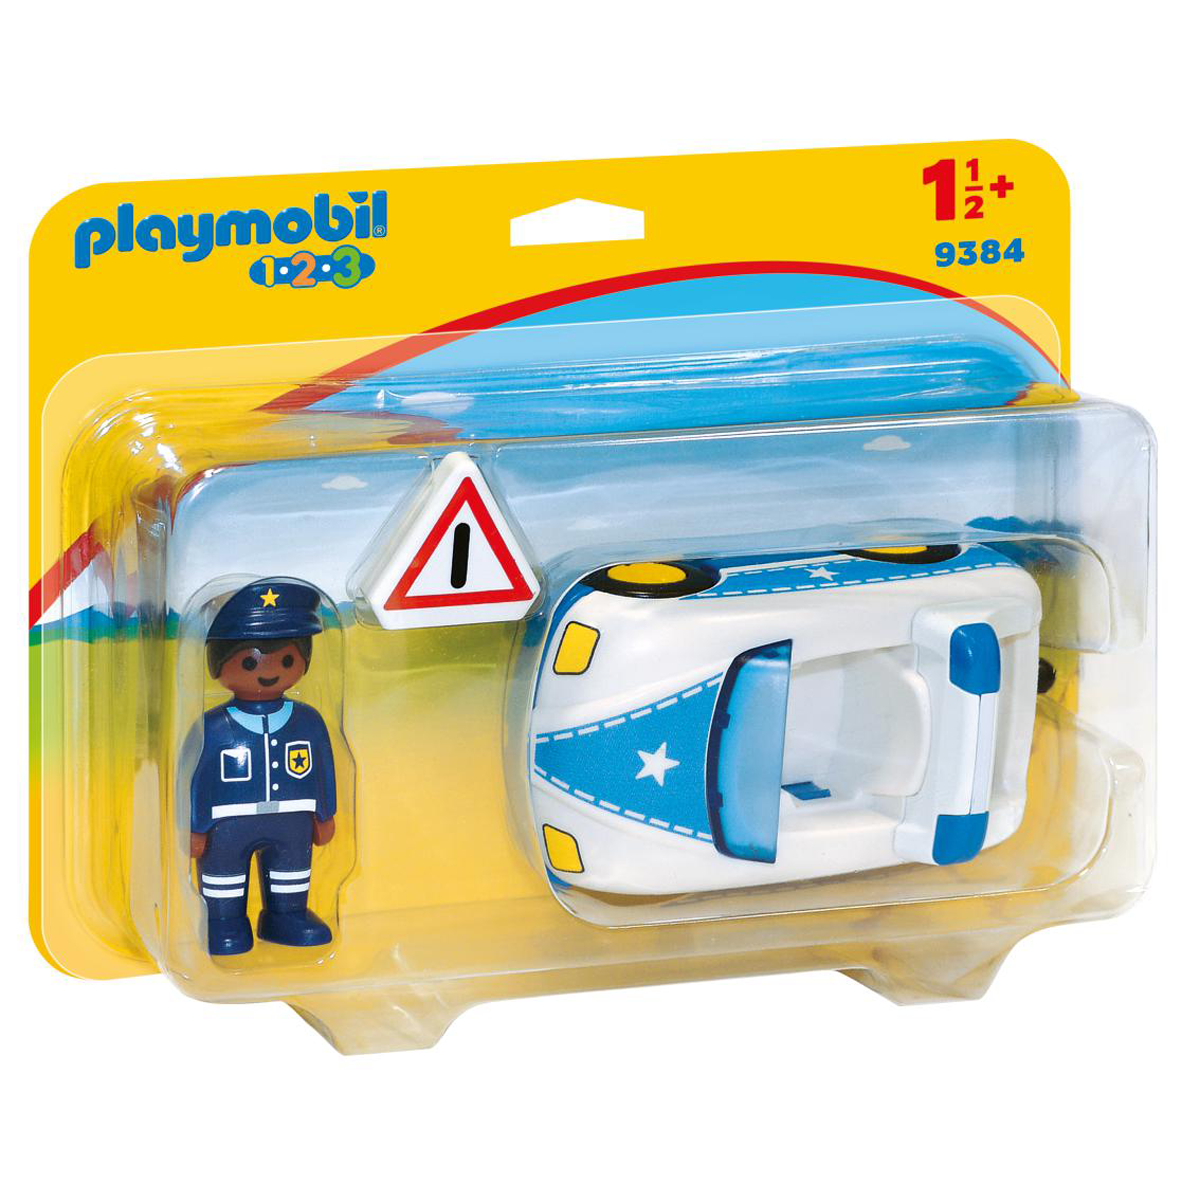 Playmobil 9384 1.2.3 Police Car with Trailer Hitch from Early Learning Center